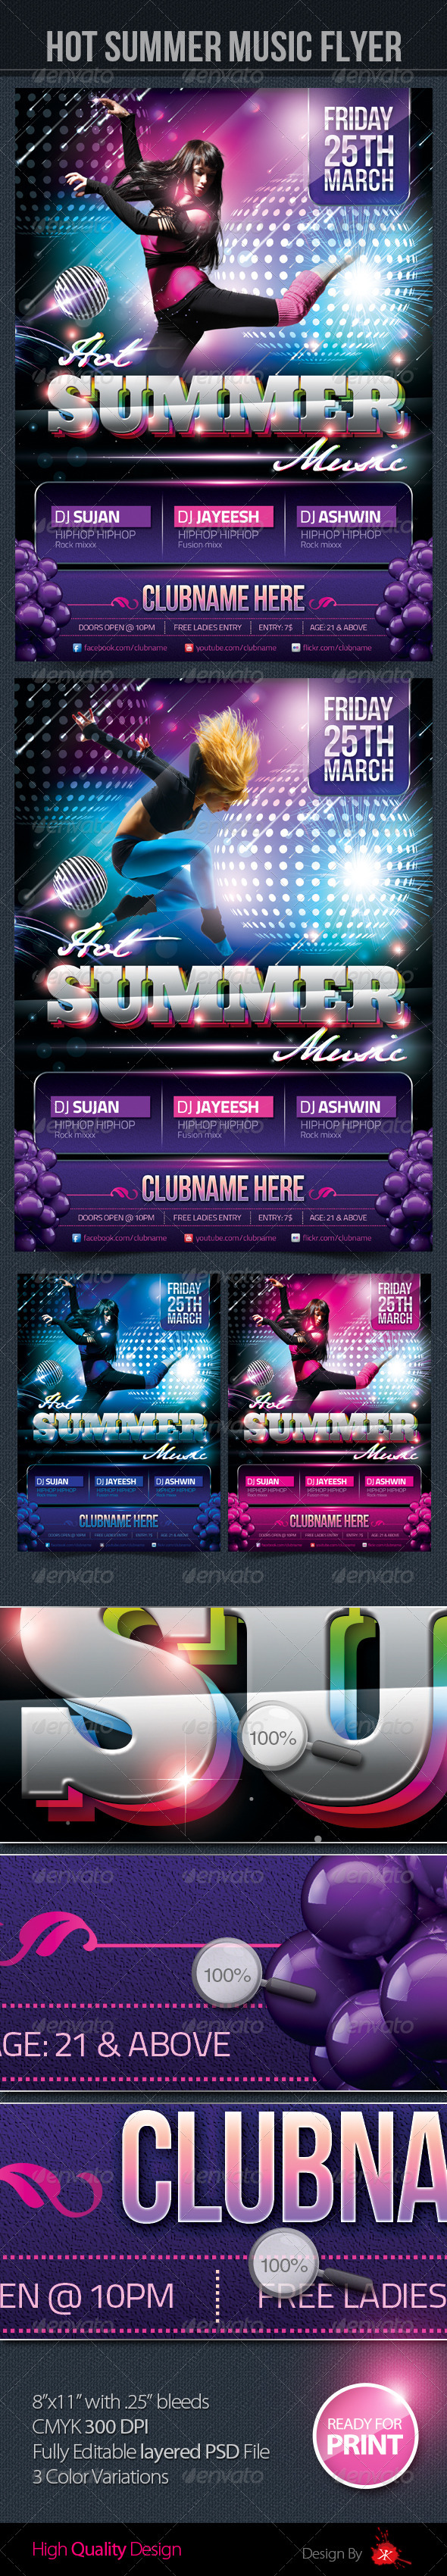 Hot Summer Music Flyer - Clubs & Parties Events